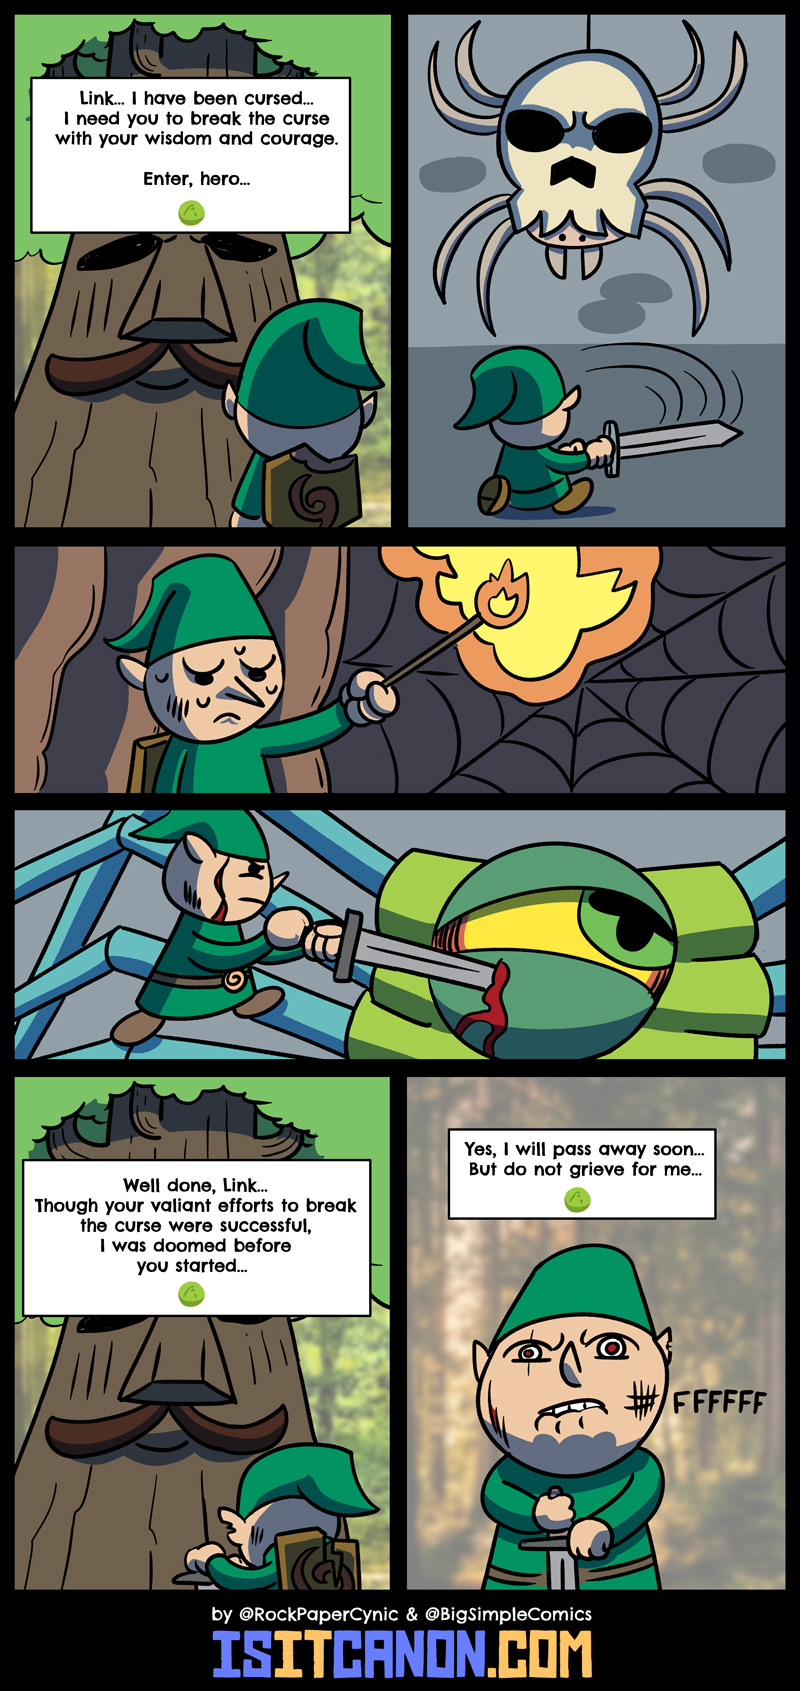 The whole Deku Tree quest in The Legend of Zelda: Ocarina of Time makes NO SENSE and here is why